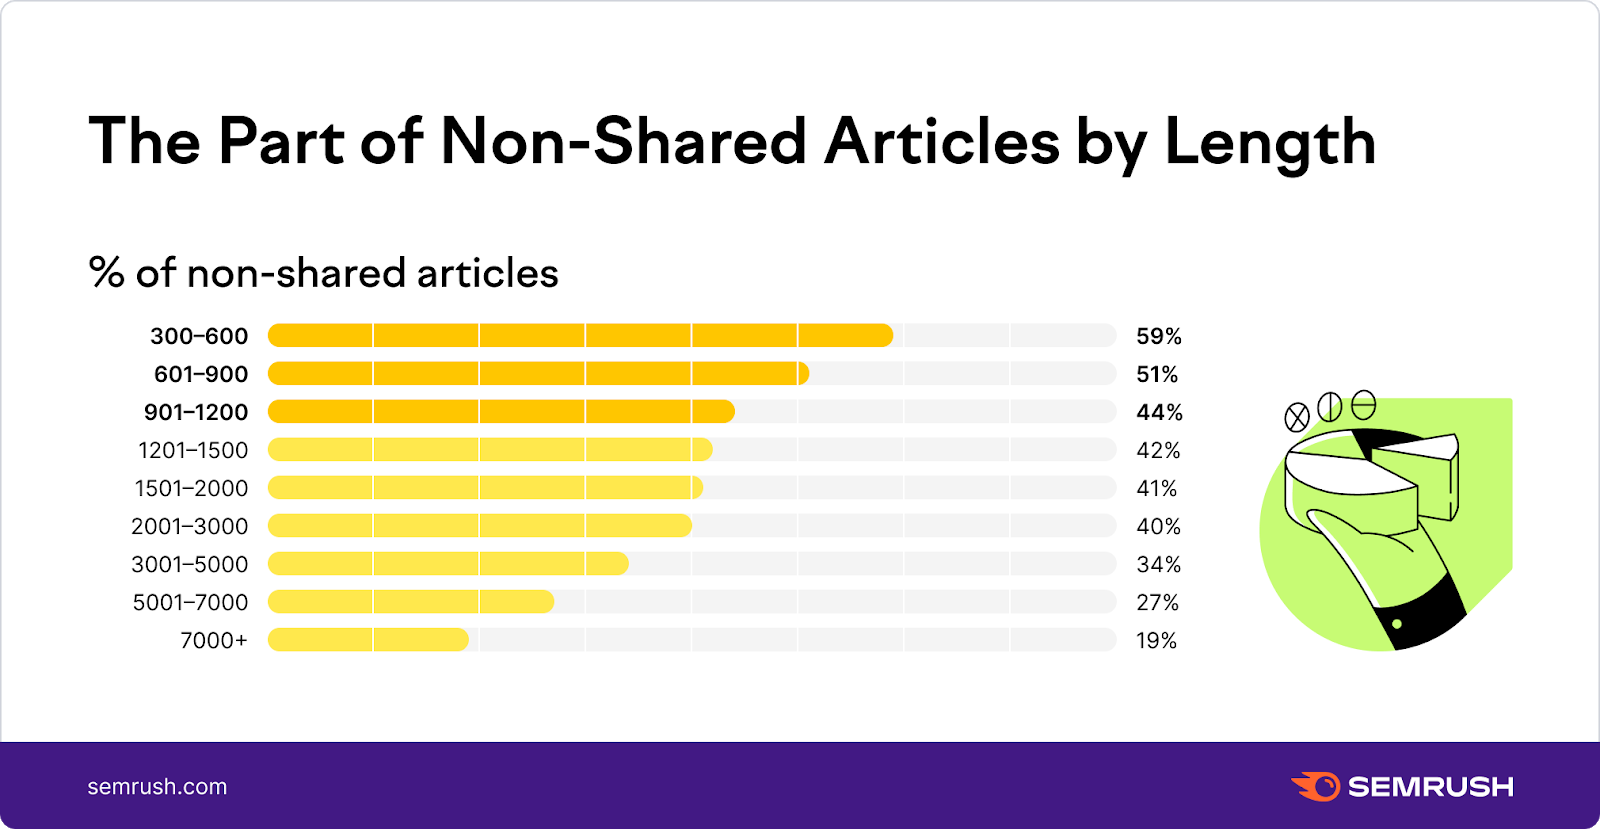 Non-shared articles by length